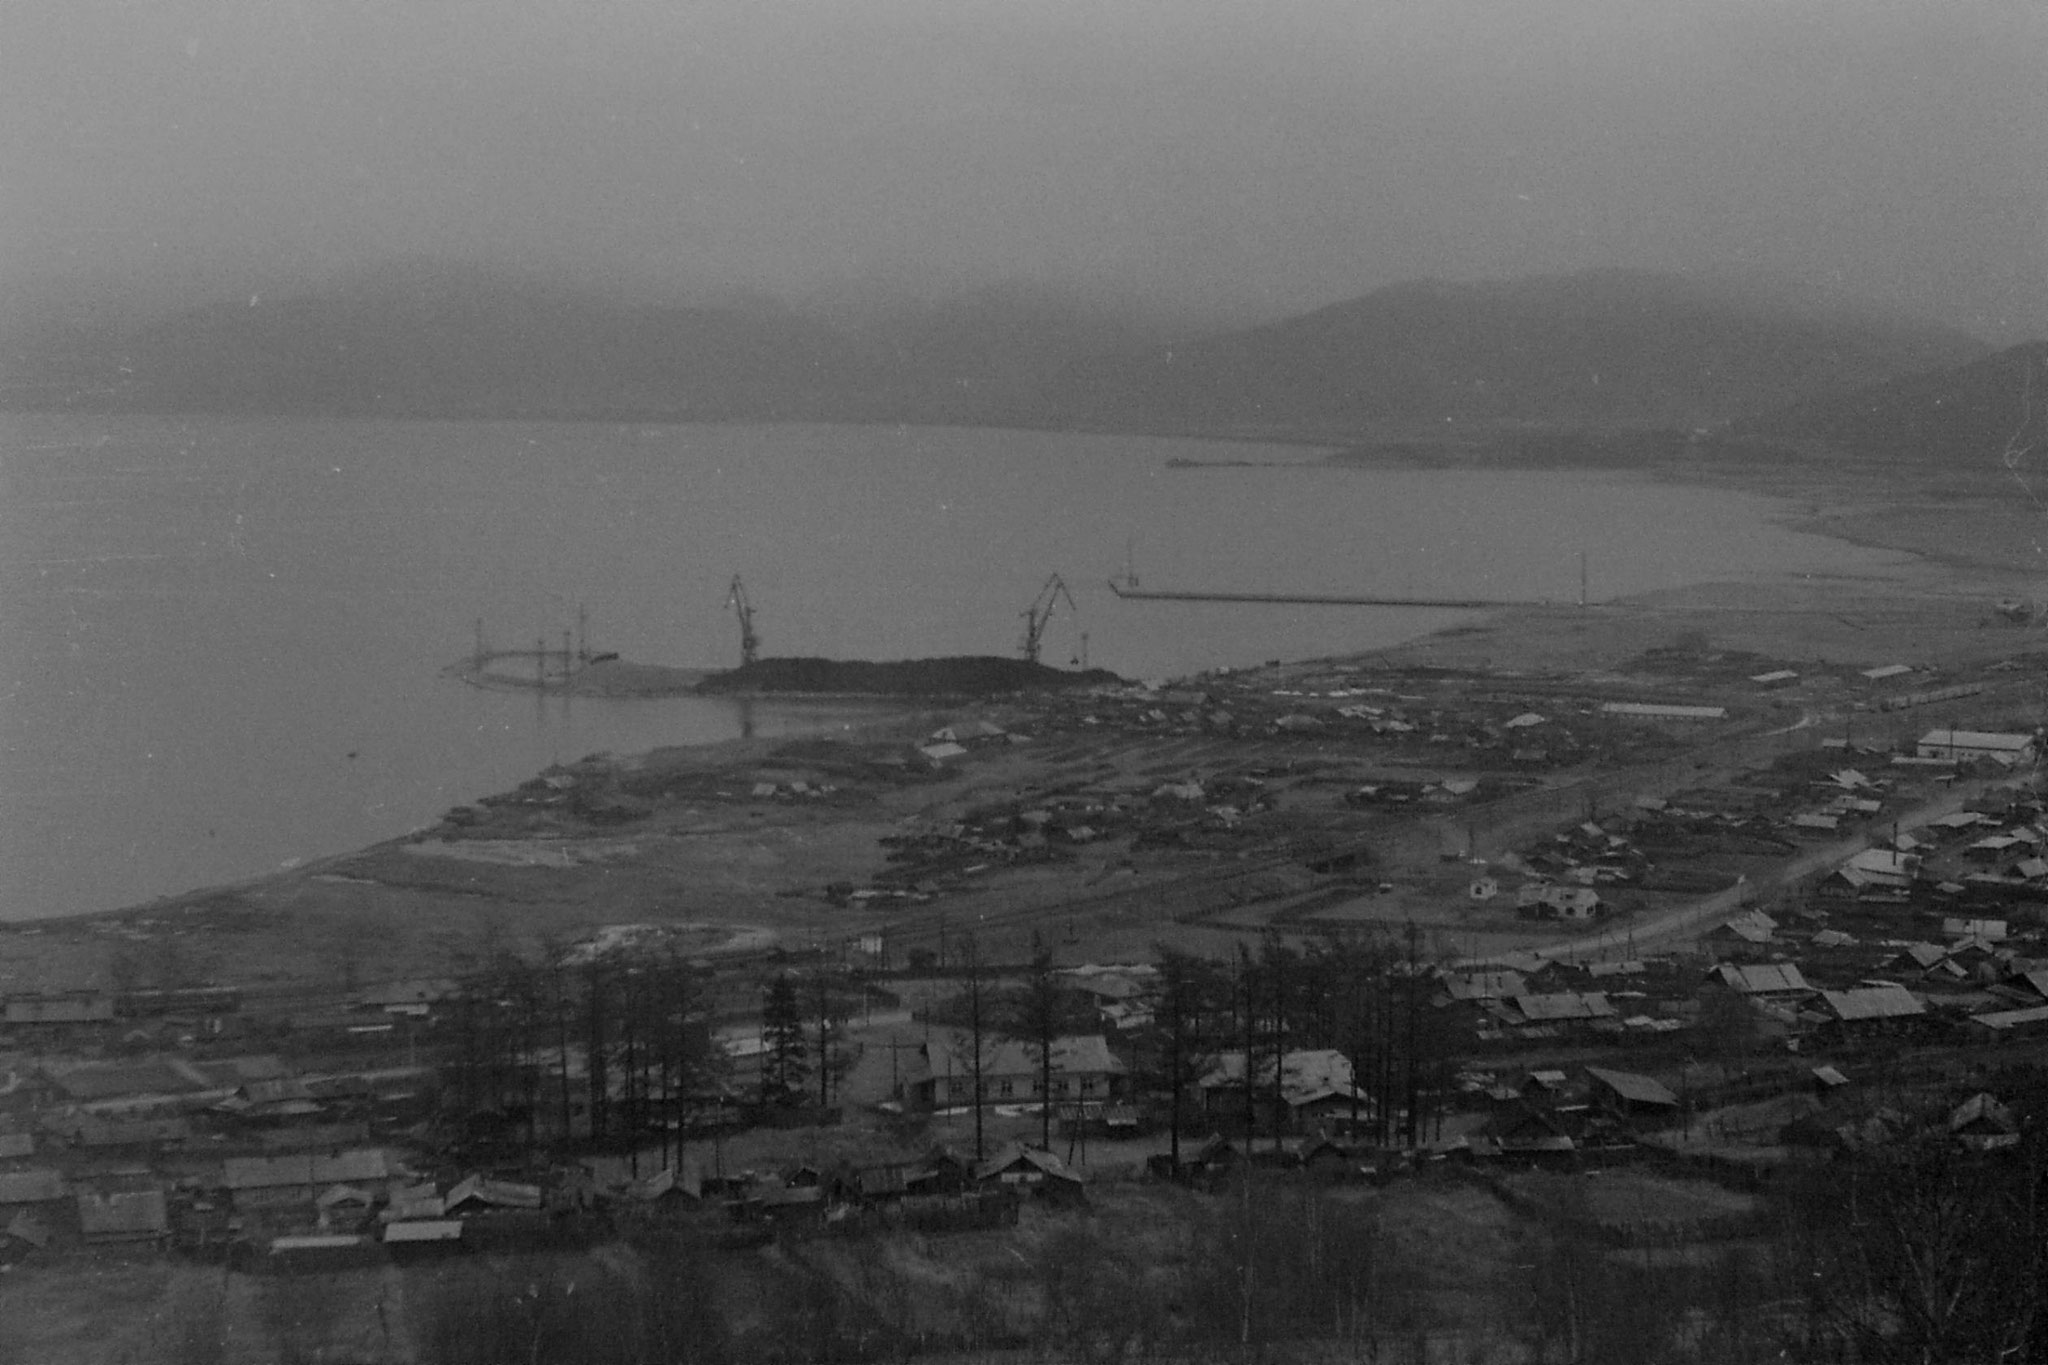 25/10/1988: 20: town on Baikal before the south end - 5886 km from Moscow